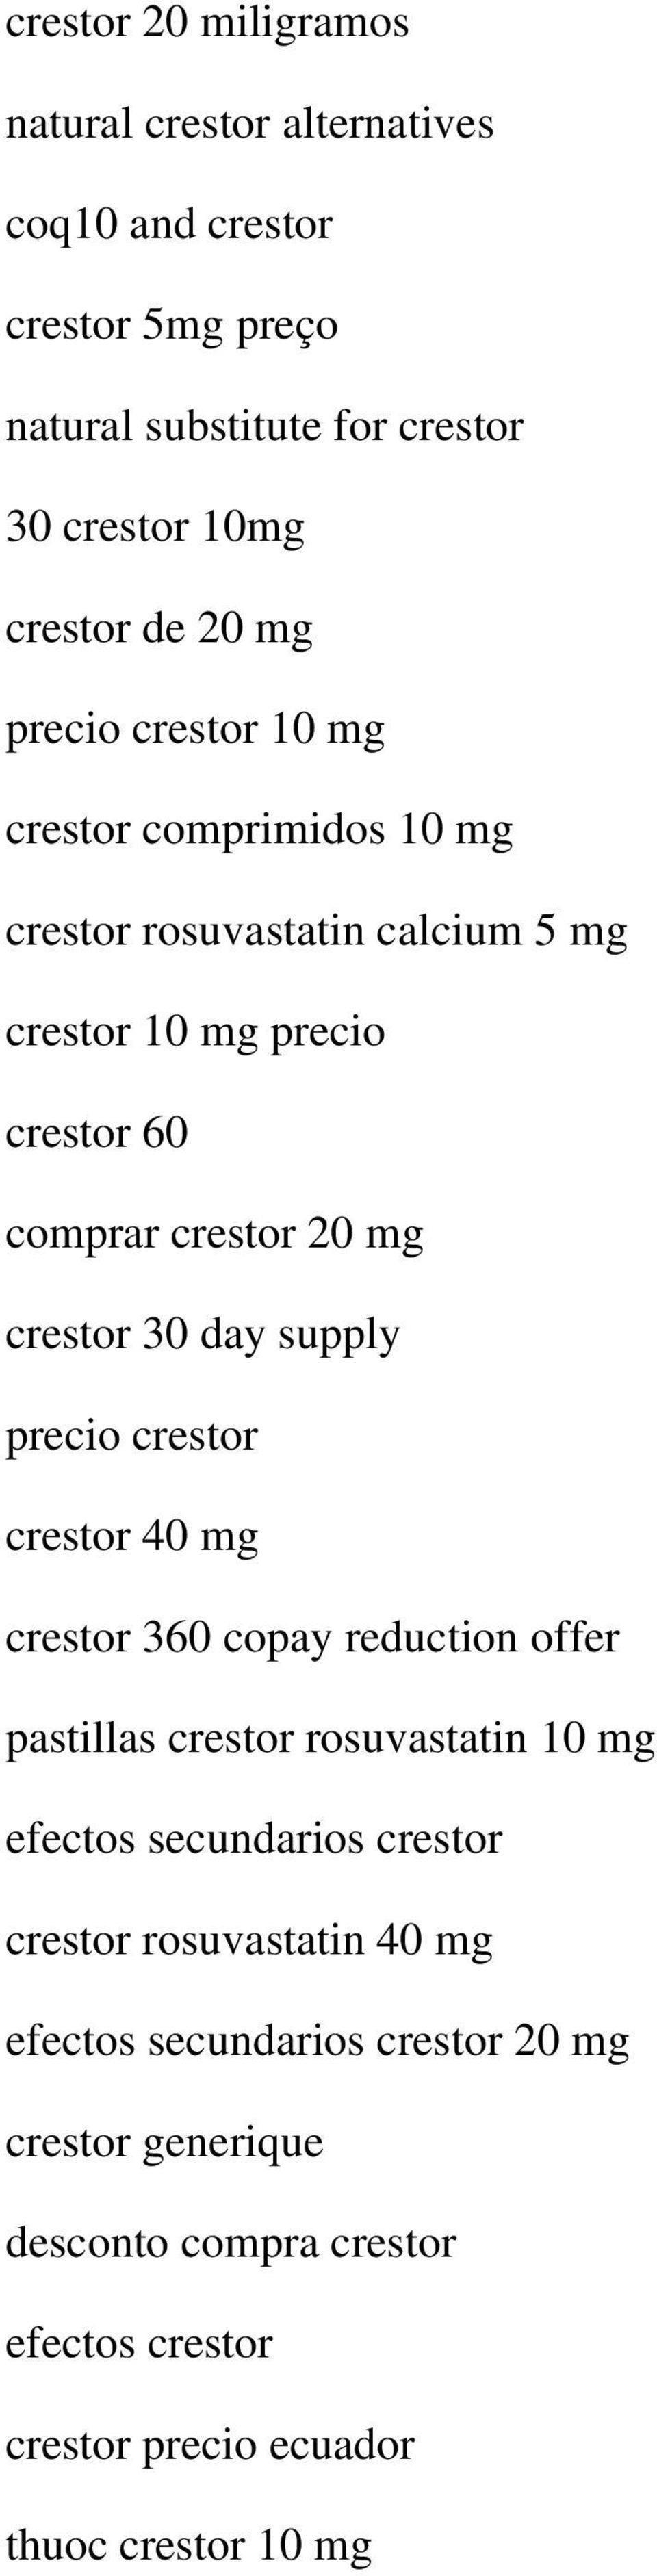 day supply precio crestor crestor 40 mg crestor 360 copay reduction offer pastillas crestor rosuvastatin 10 mg efectos secundarios crestor crestor